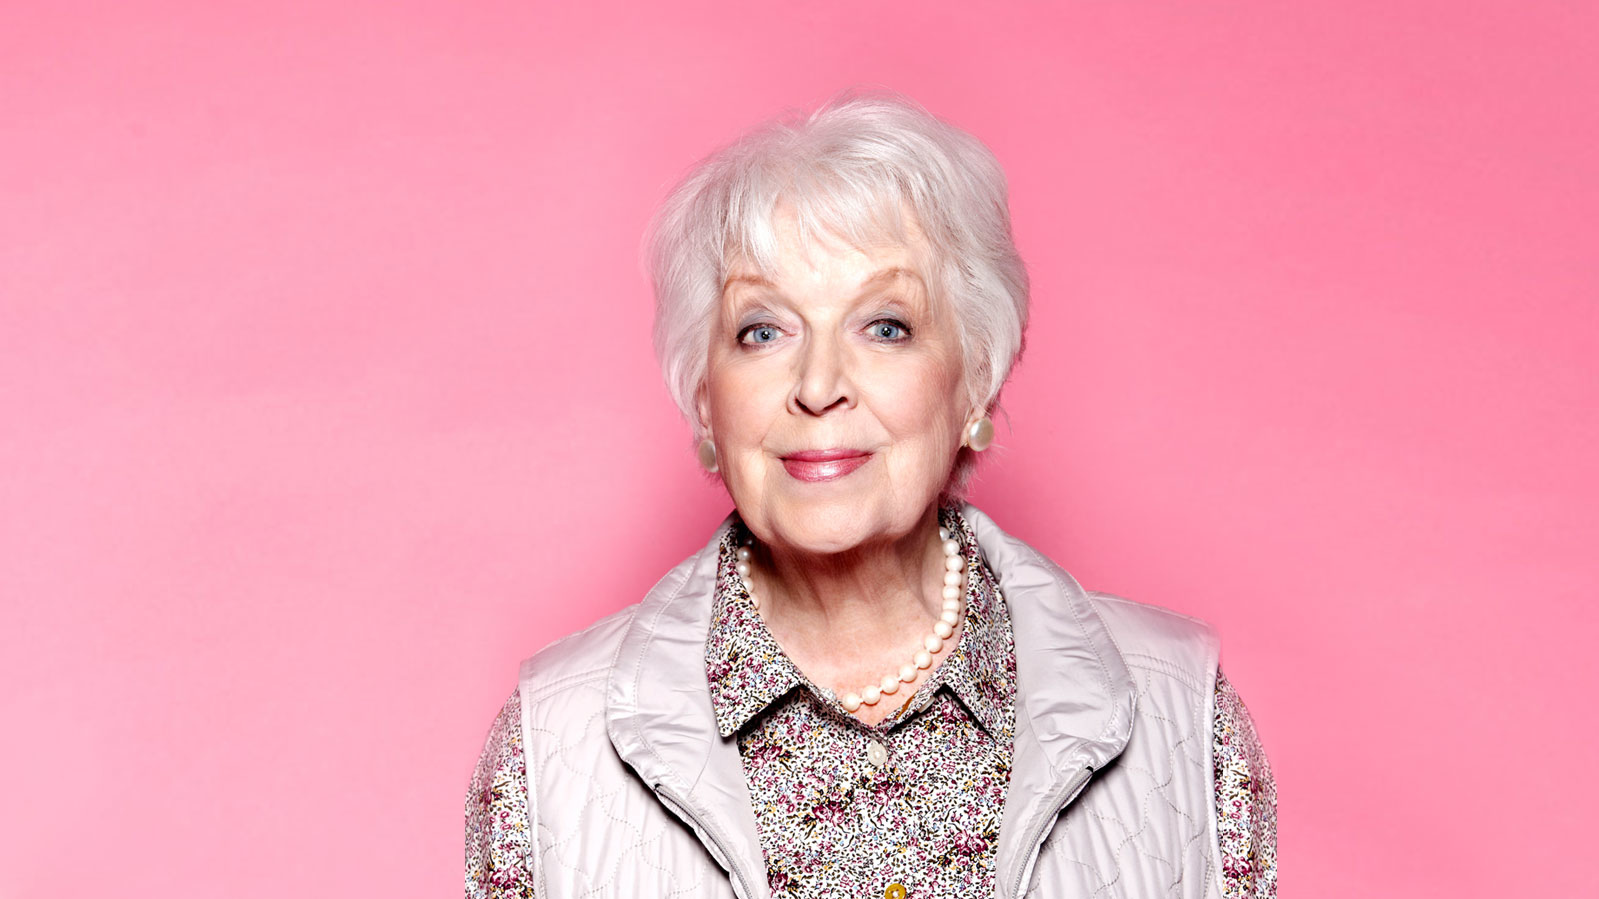 June Whitfield (born 1925)